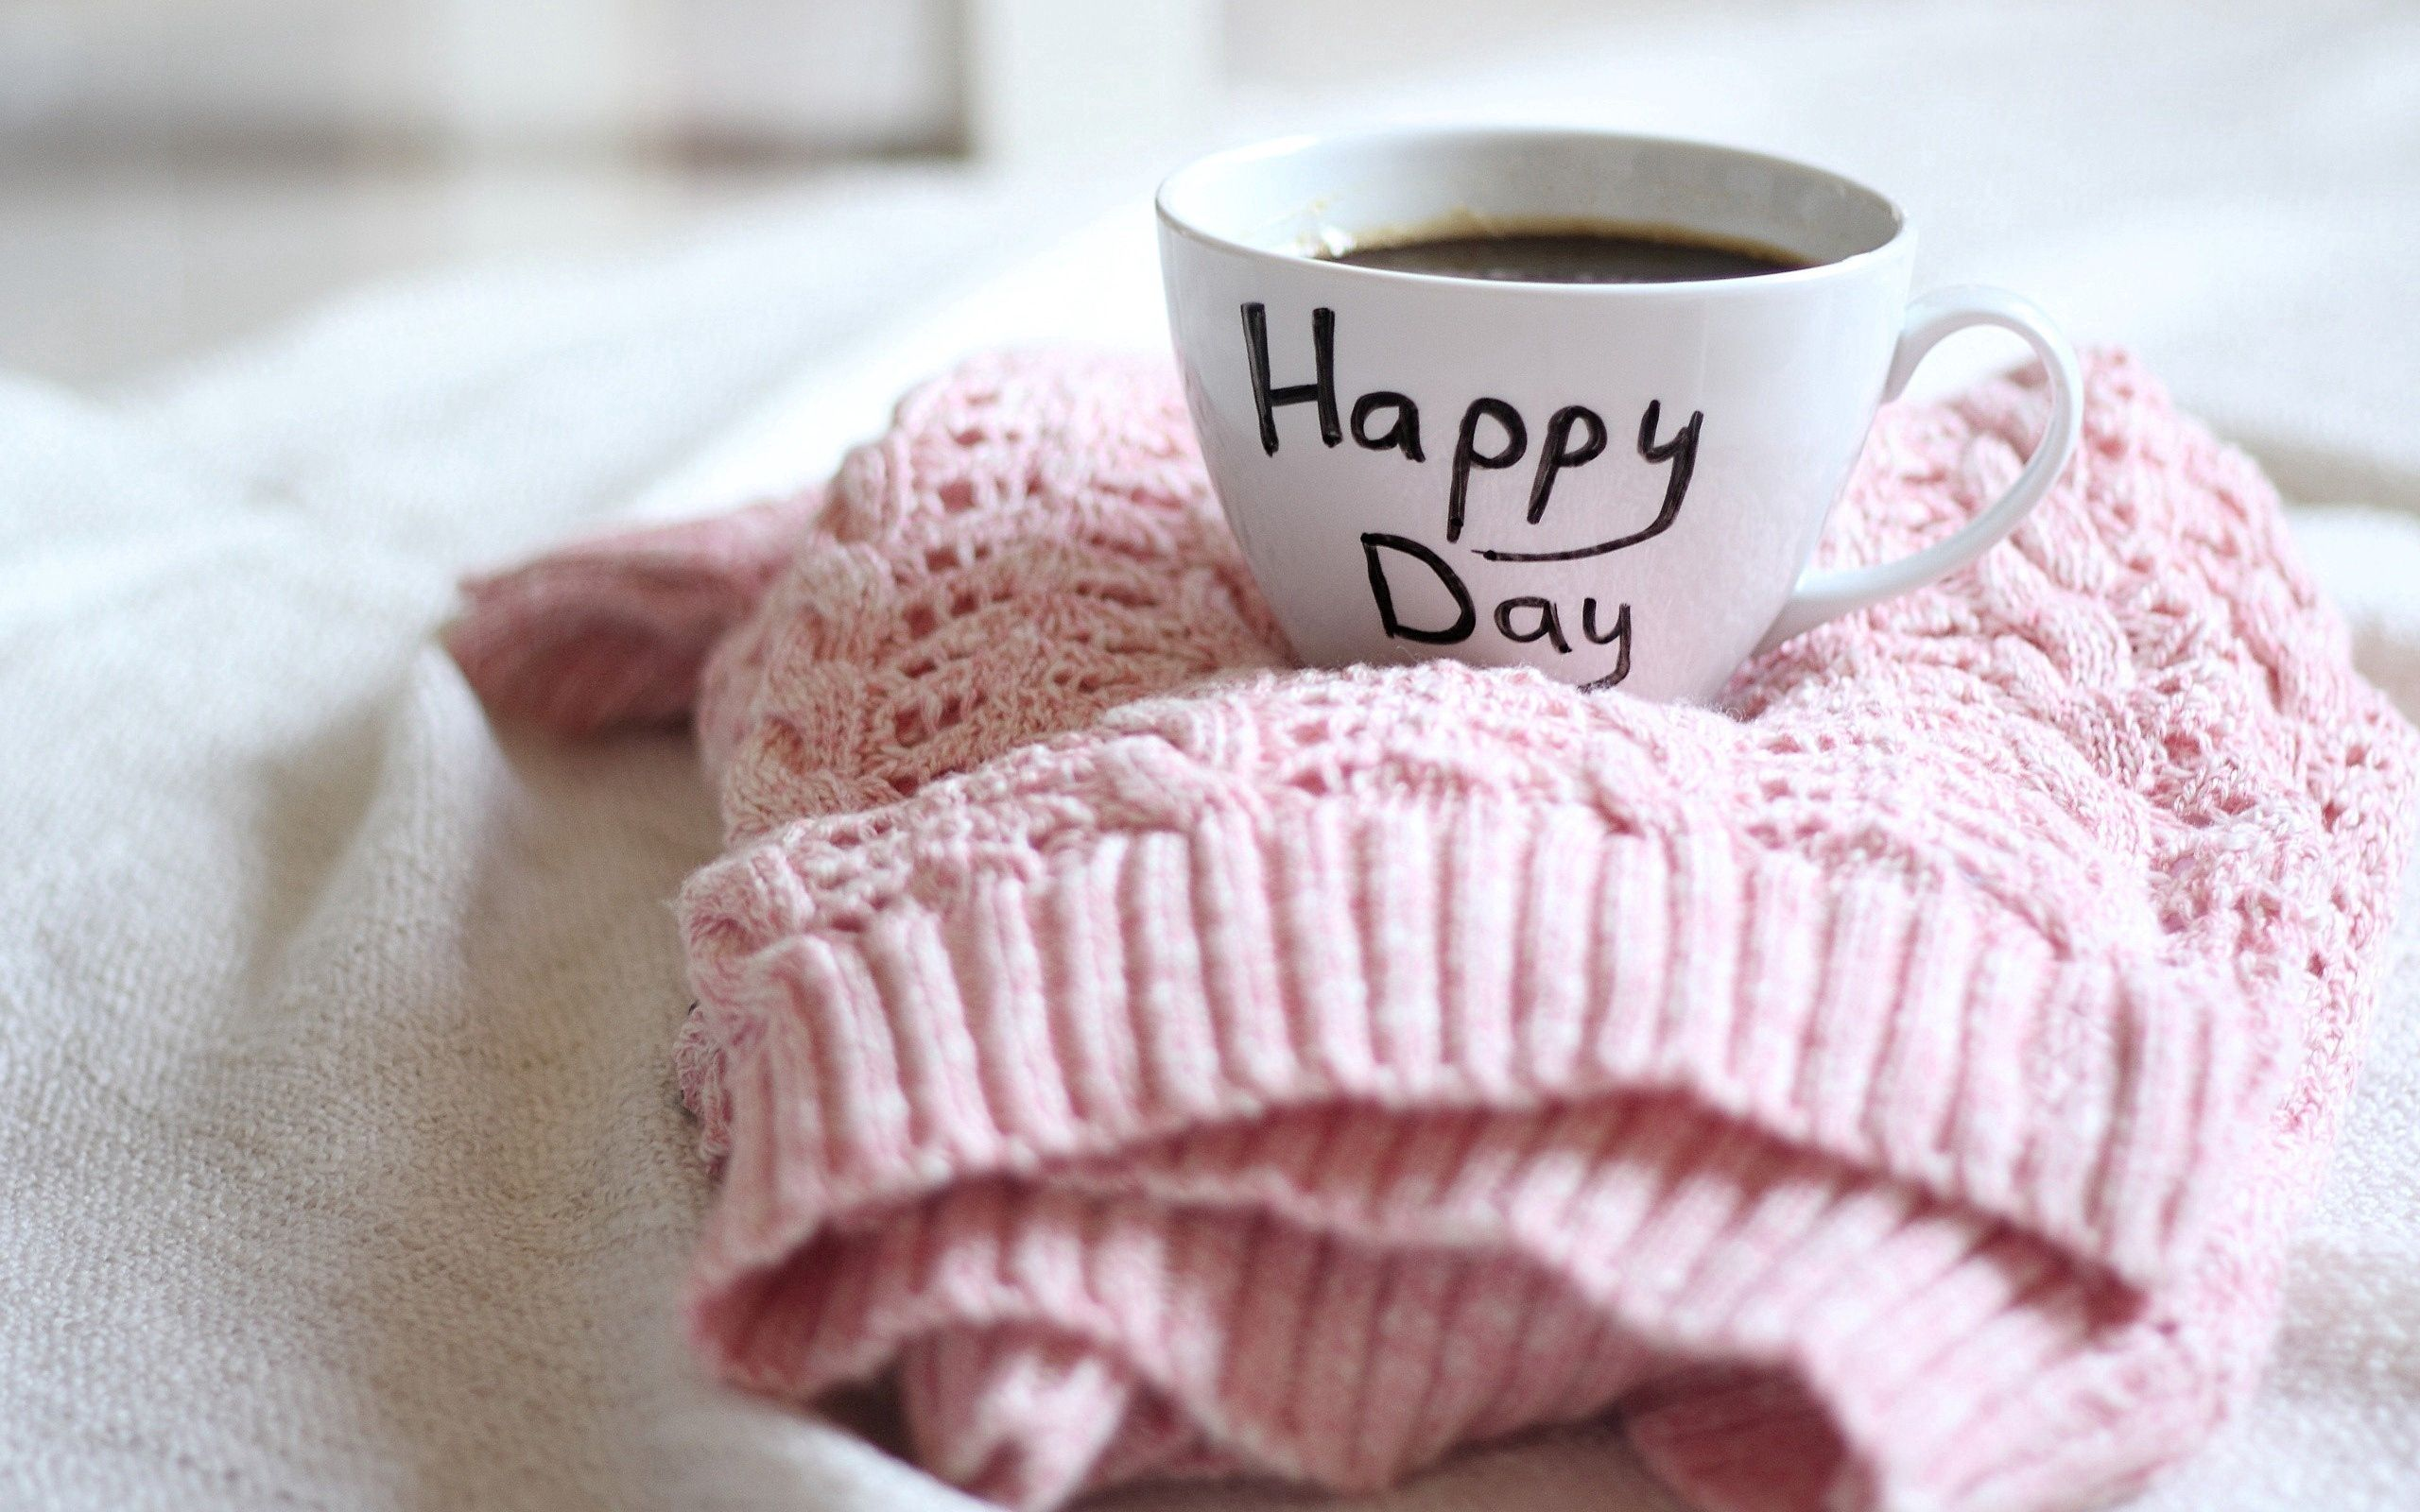 114393 download wallpaper Miscellanea, Miscellaneous, Cup, Sweater, Coffee, Care, Wish screensavers and pictures for free